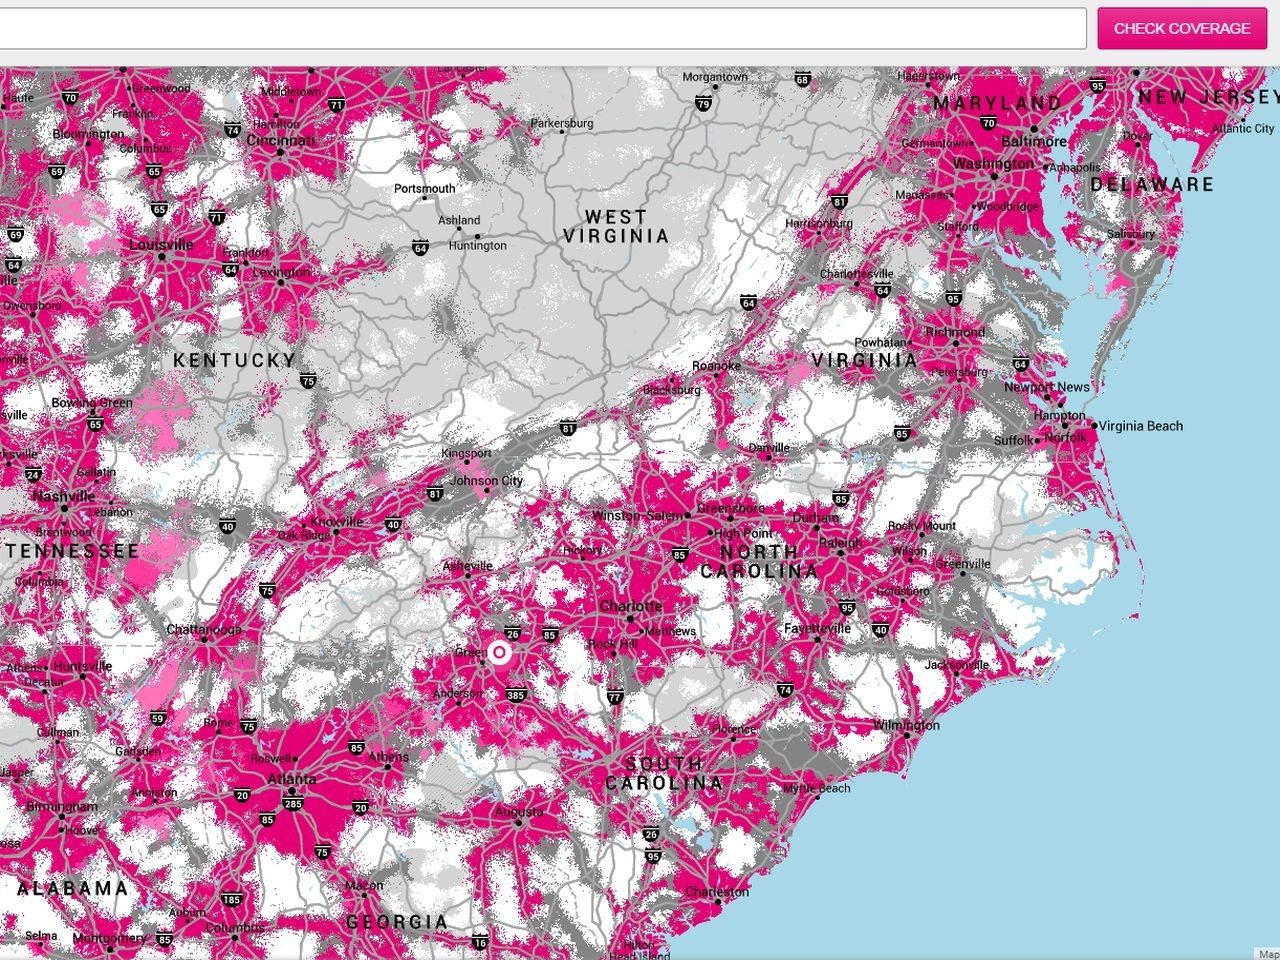 T-Mobile uses \'real-time customer experience\' for its new coverage ...